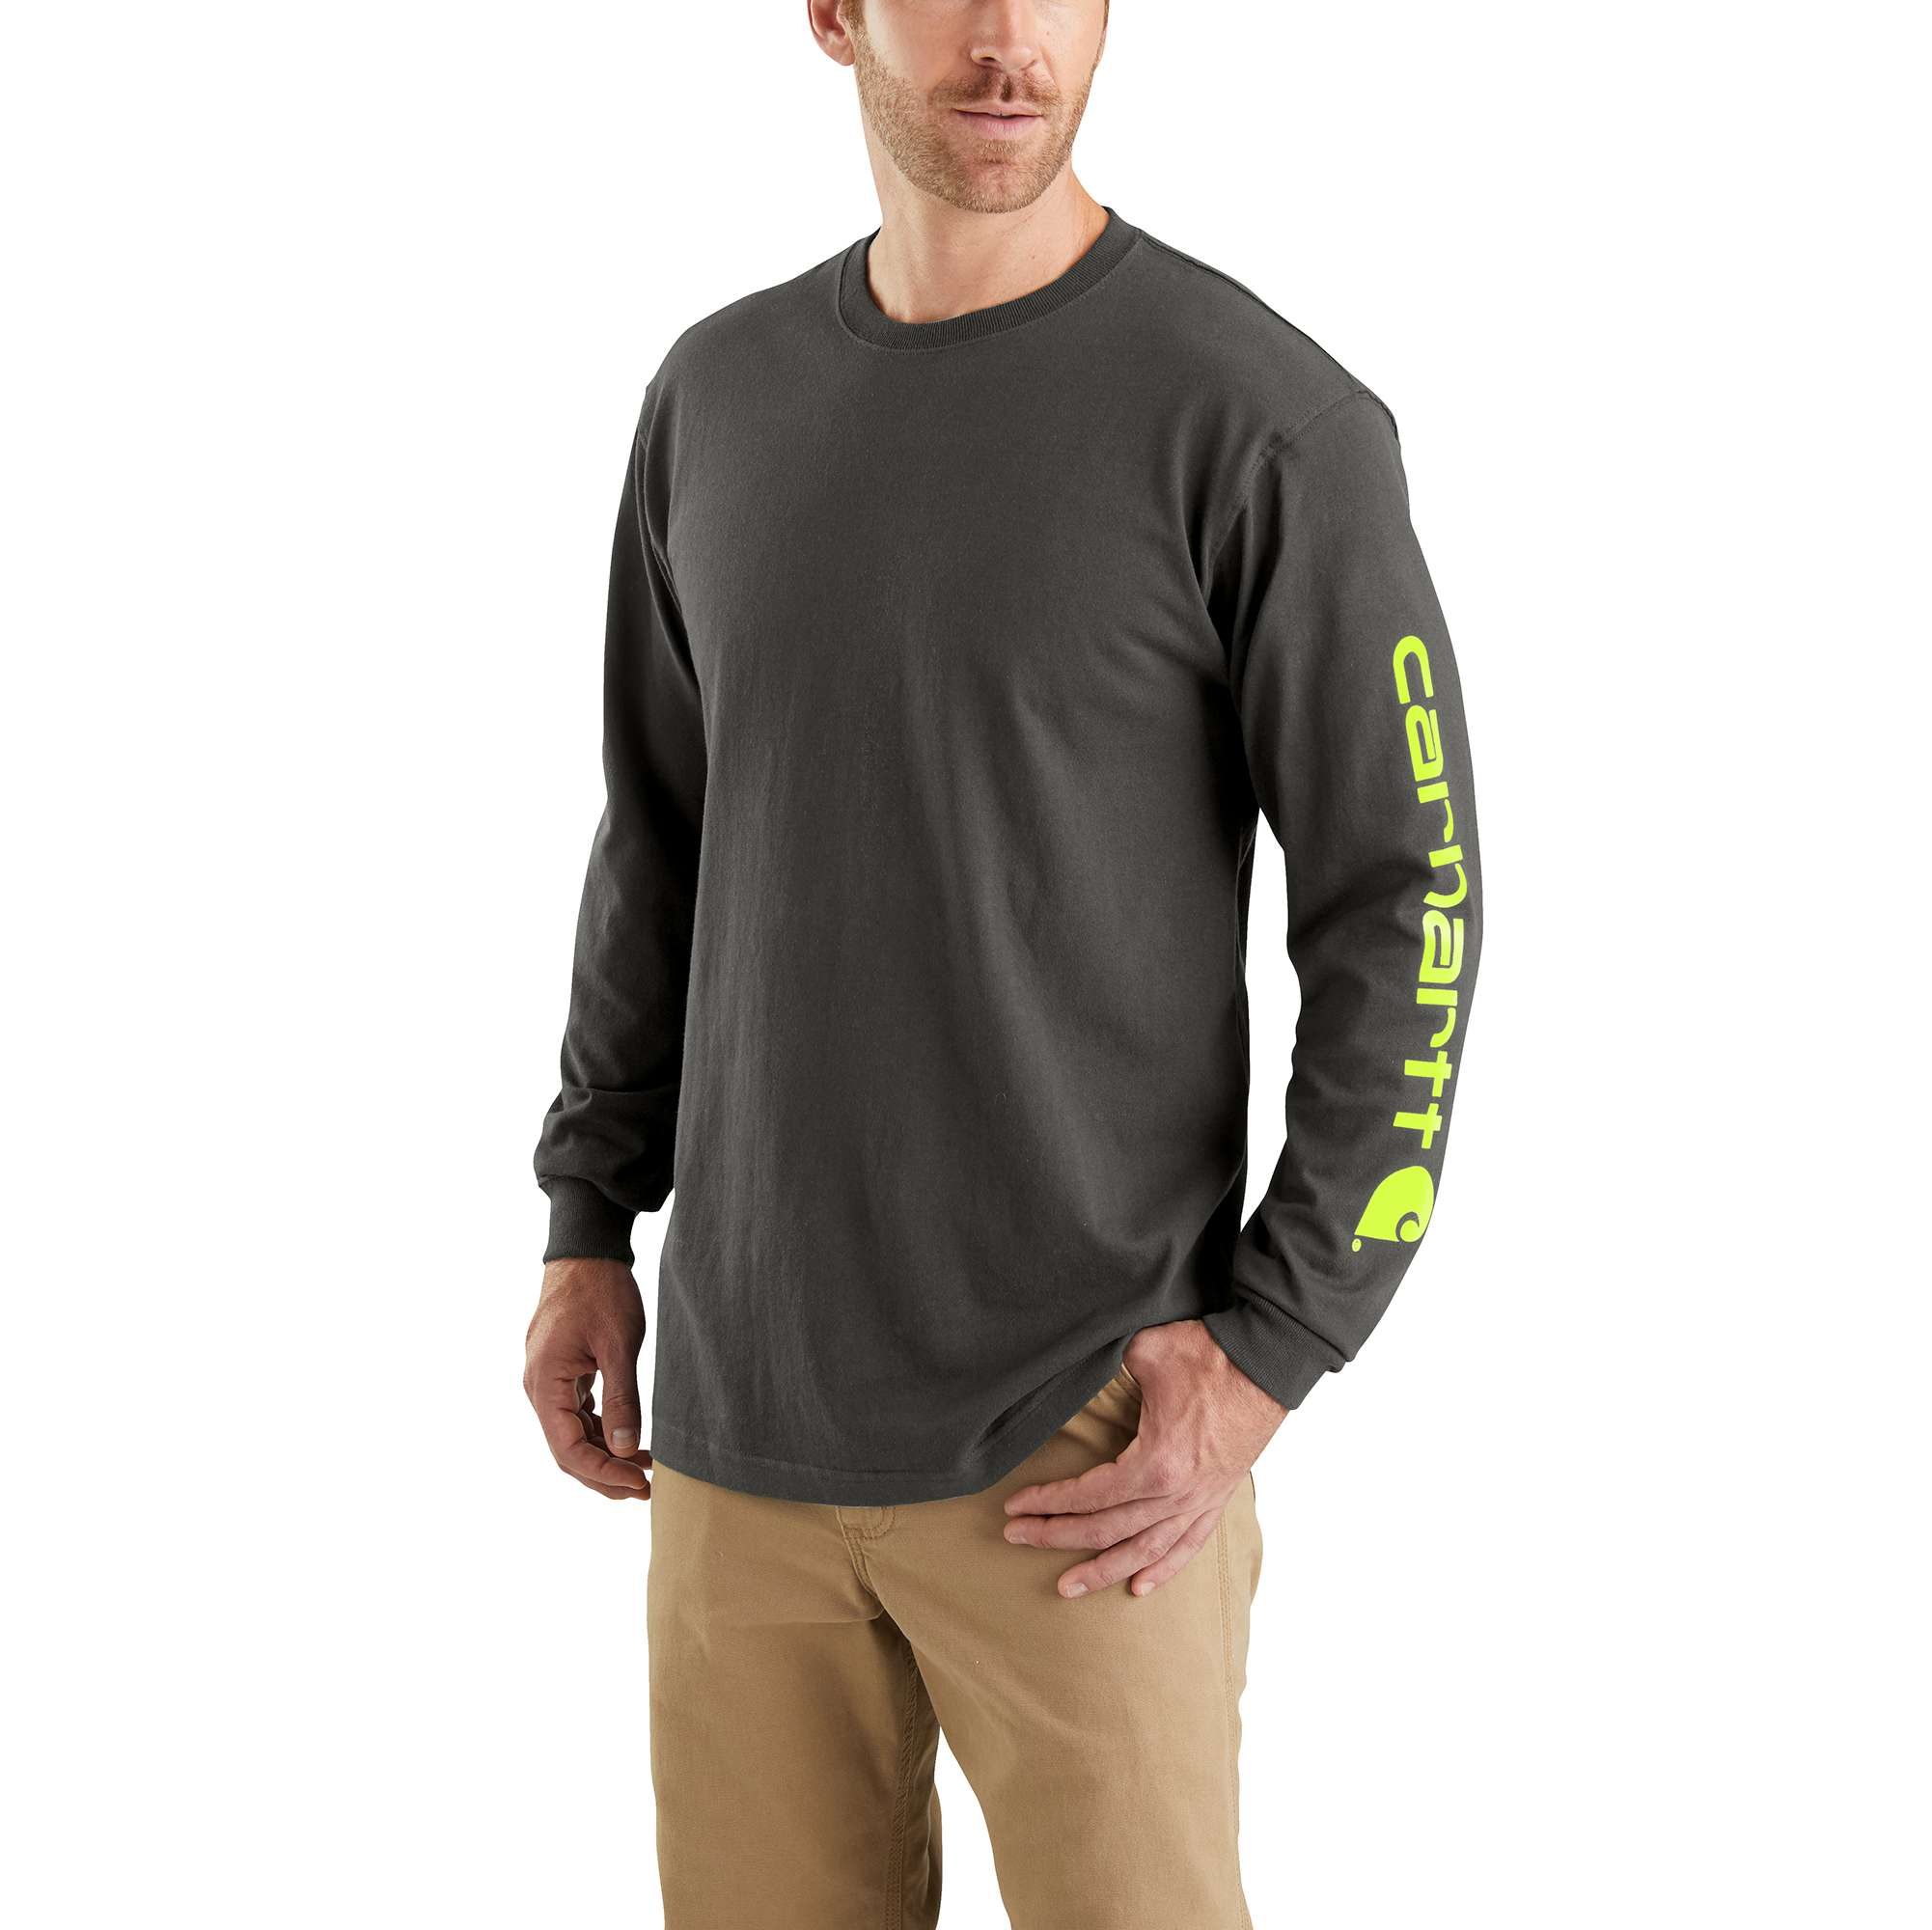 Men's  Long Sleeve Signature Logo Tall Tee, Brown, swatch